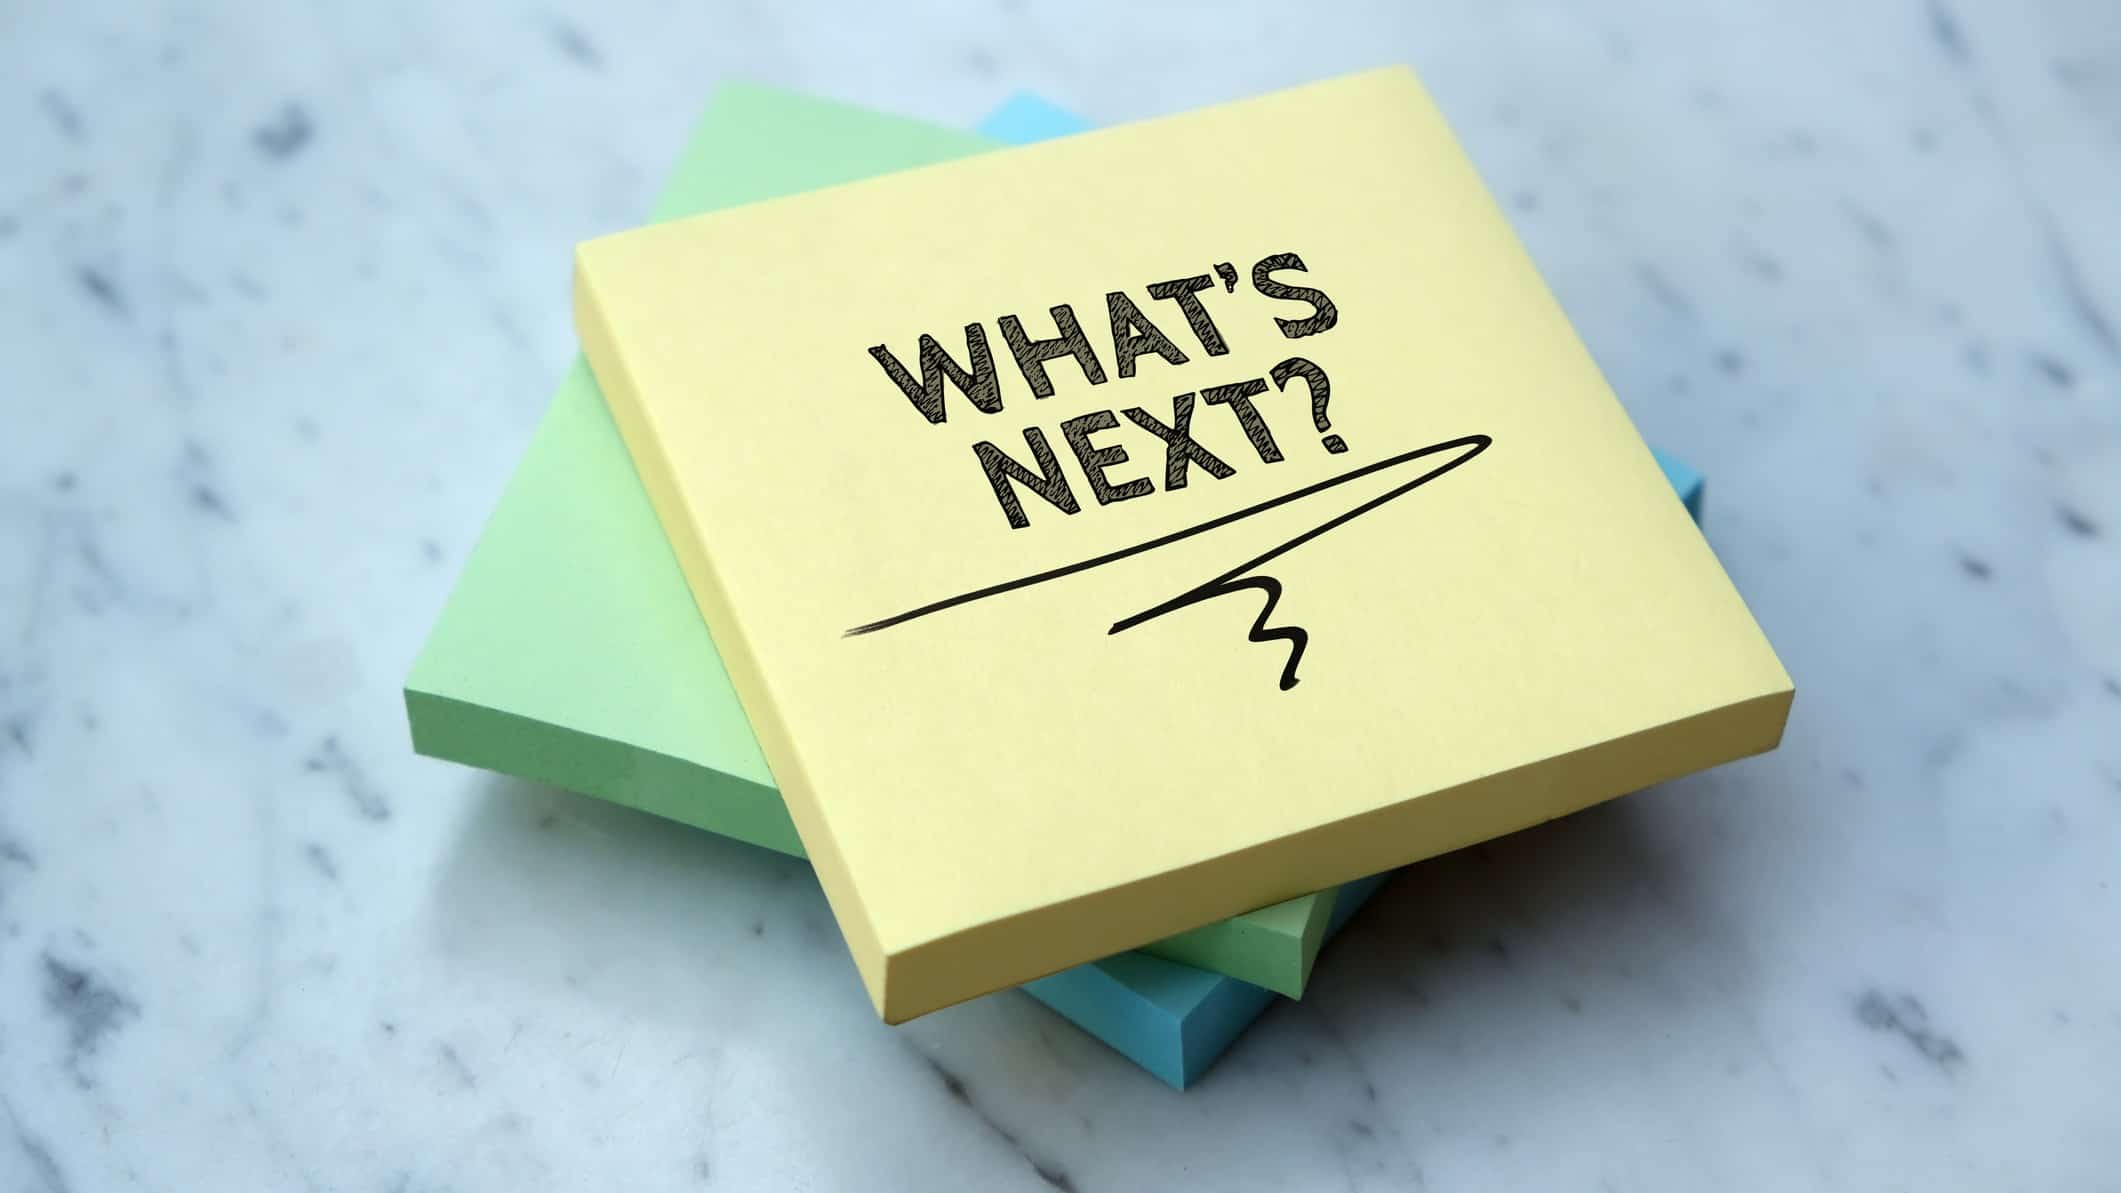 note pad with the words 'what's next' written on it representing uncertainty surrounding mcmillan share price